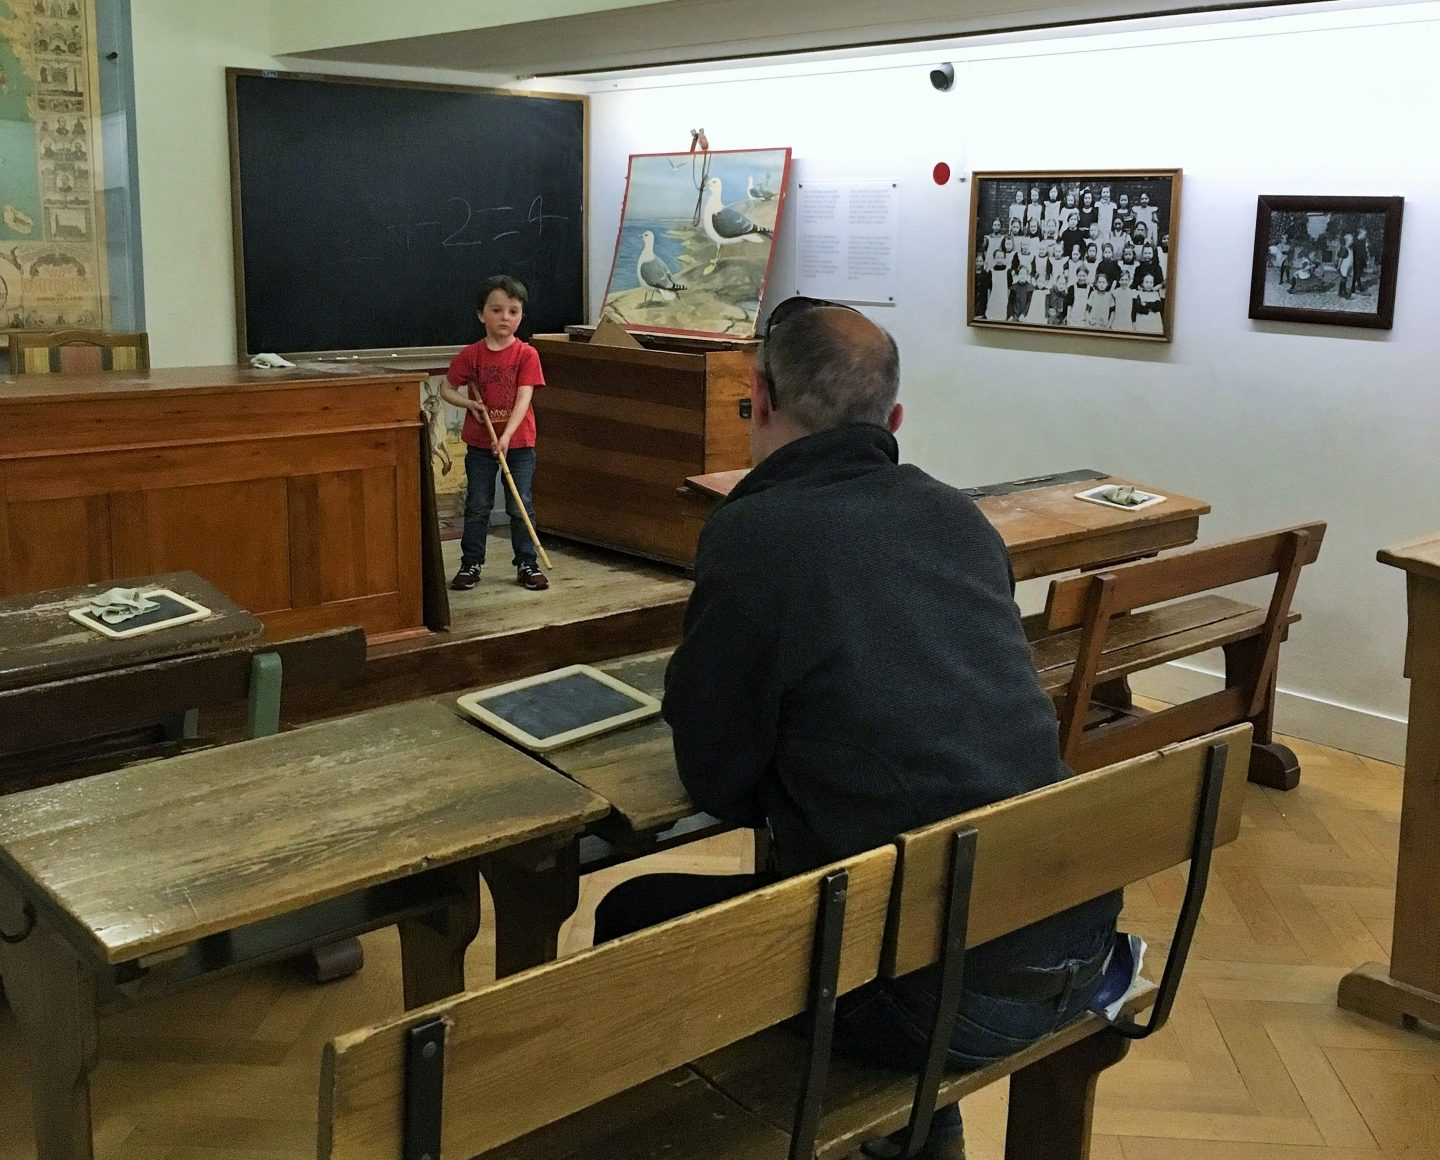 Classroom at Children's Museum, National Museum of Denmark